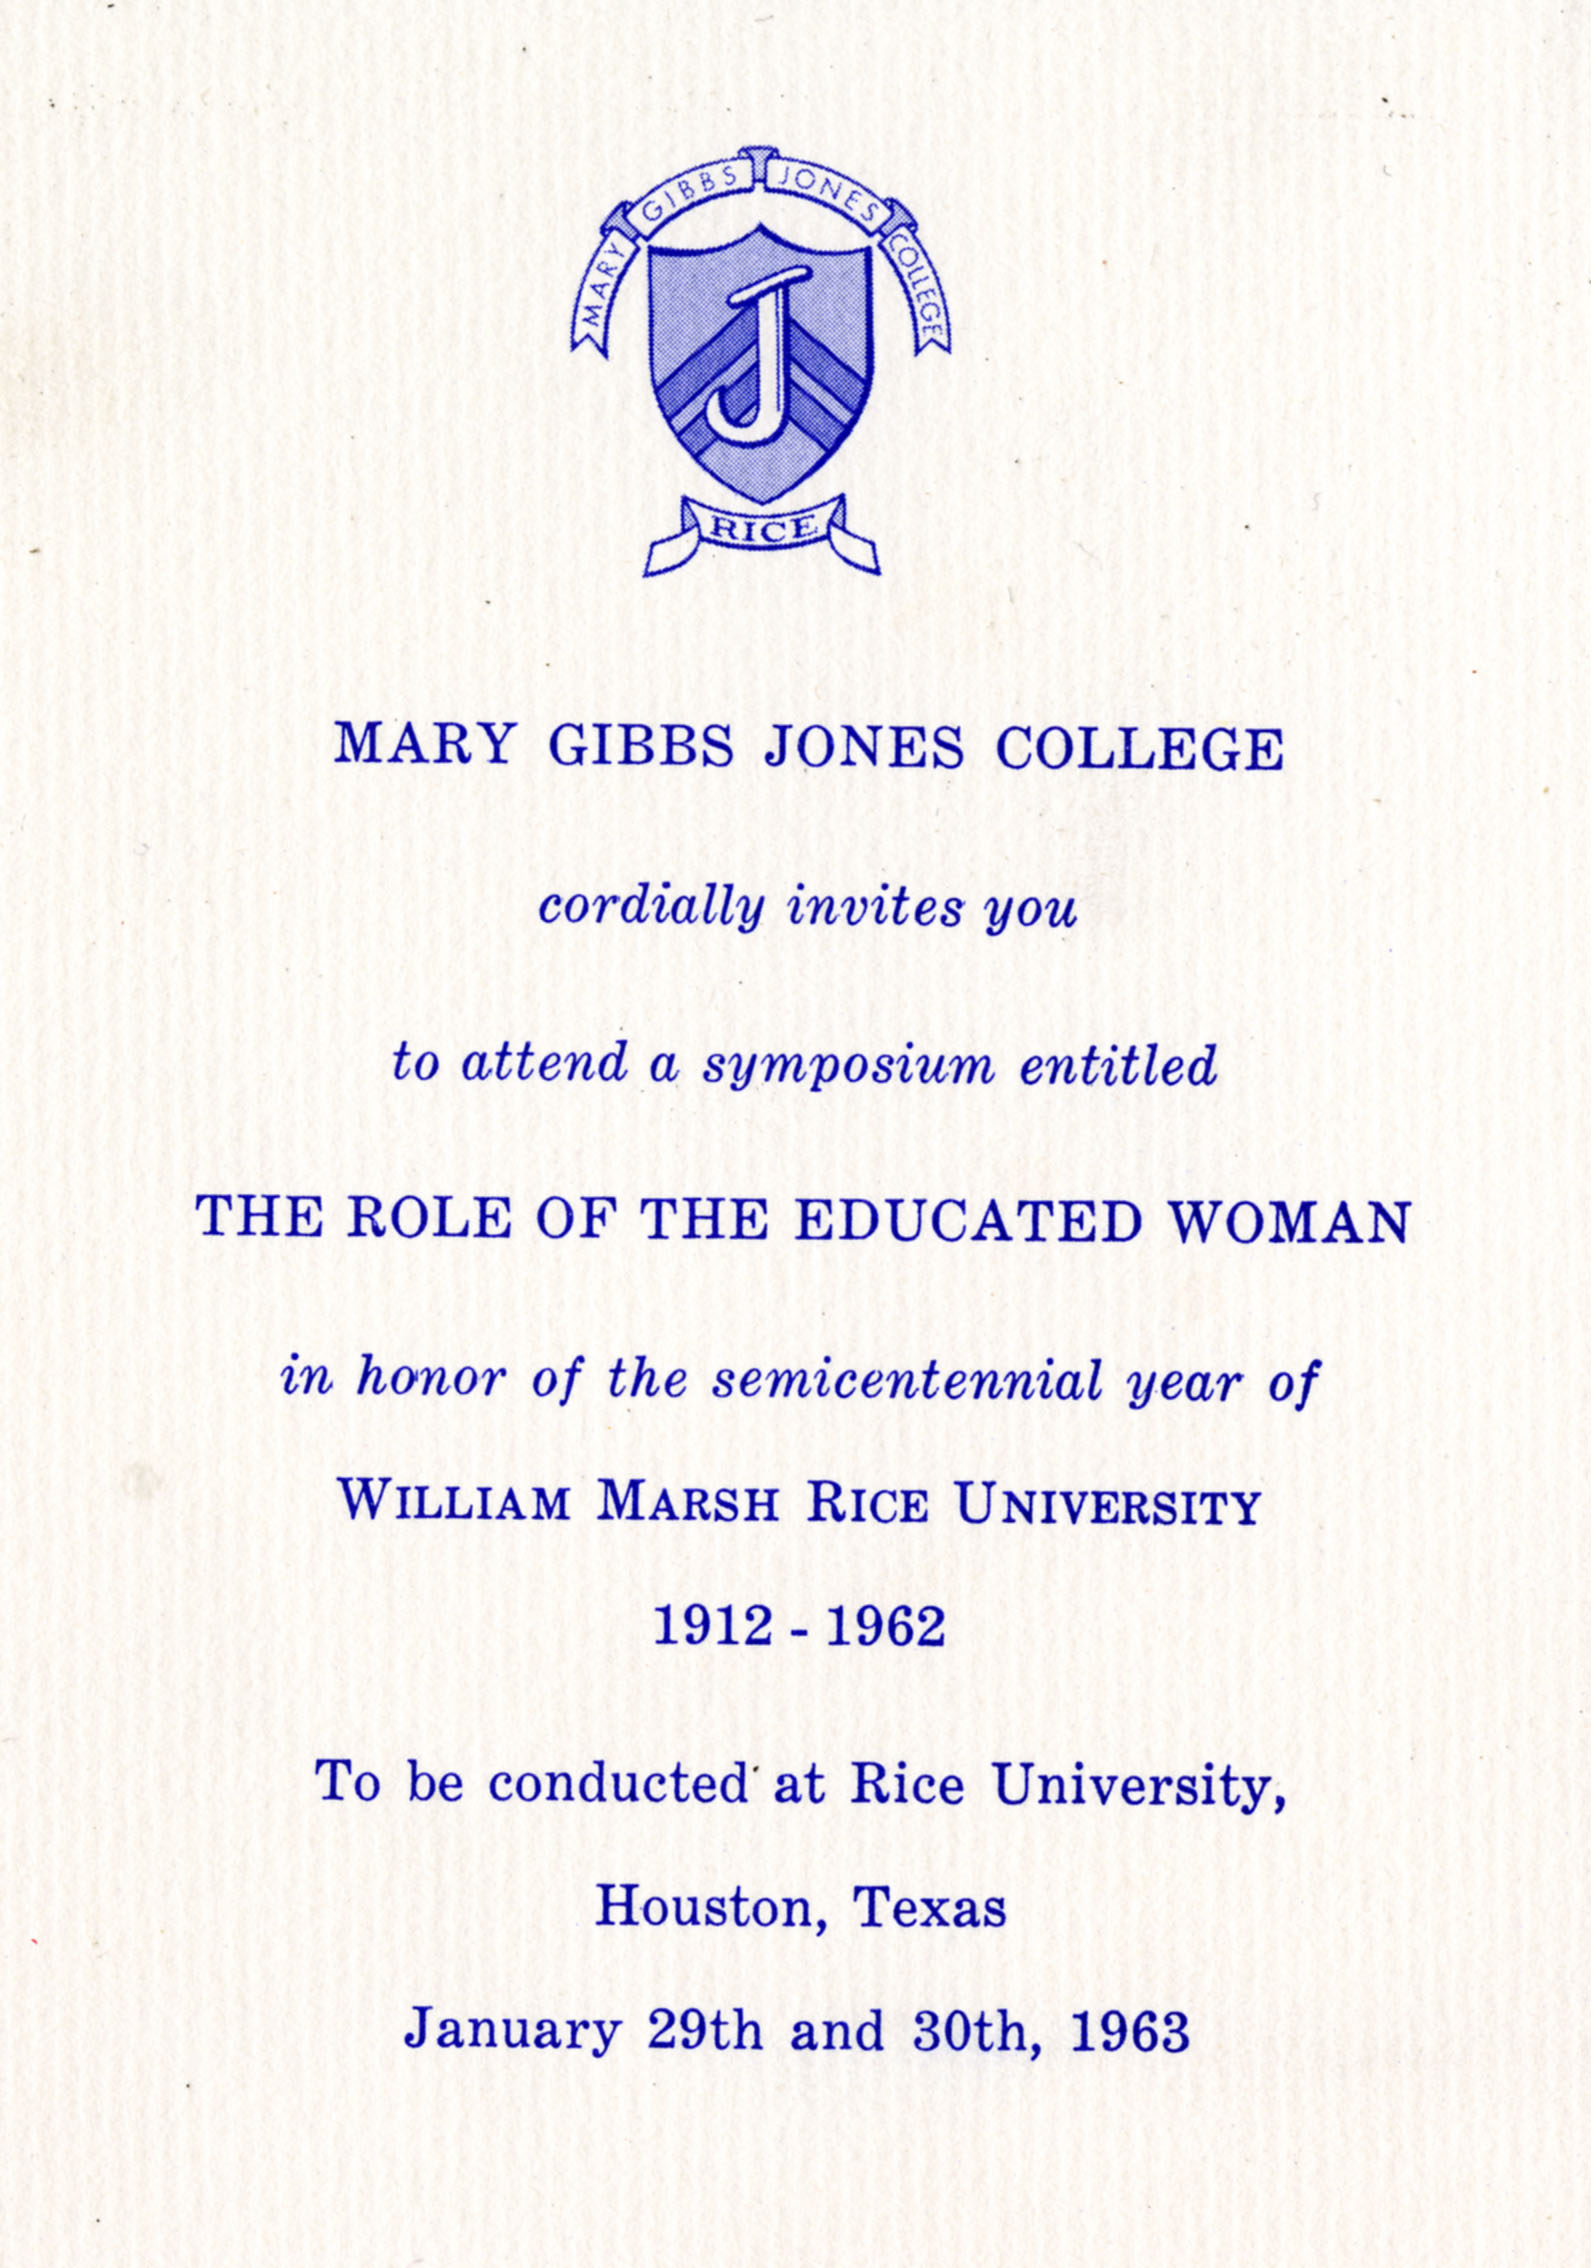 Jones College Symposium 1963 The Role of the Educated Woman Now